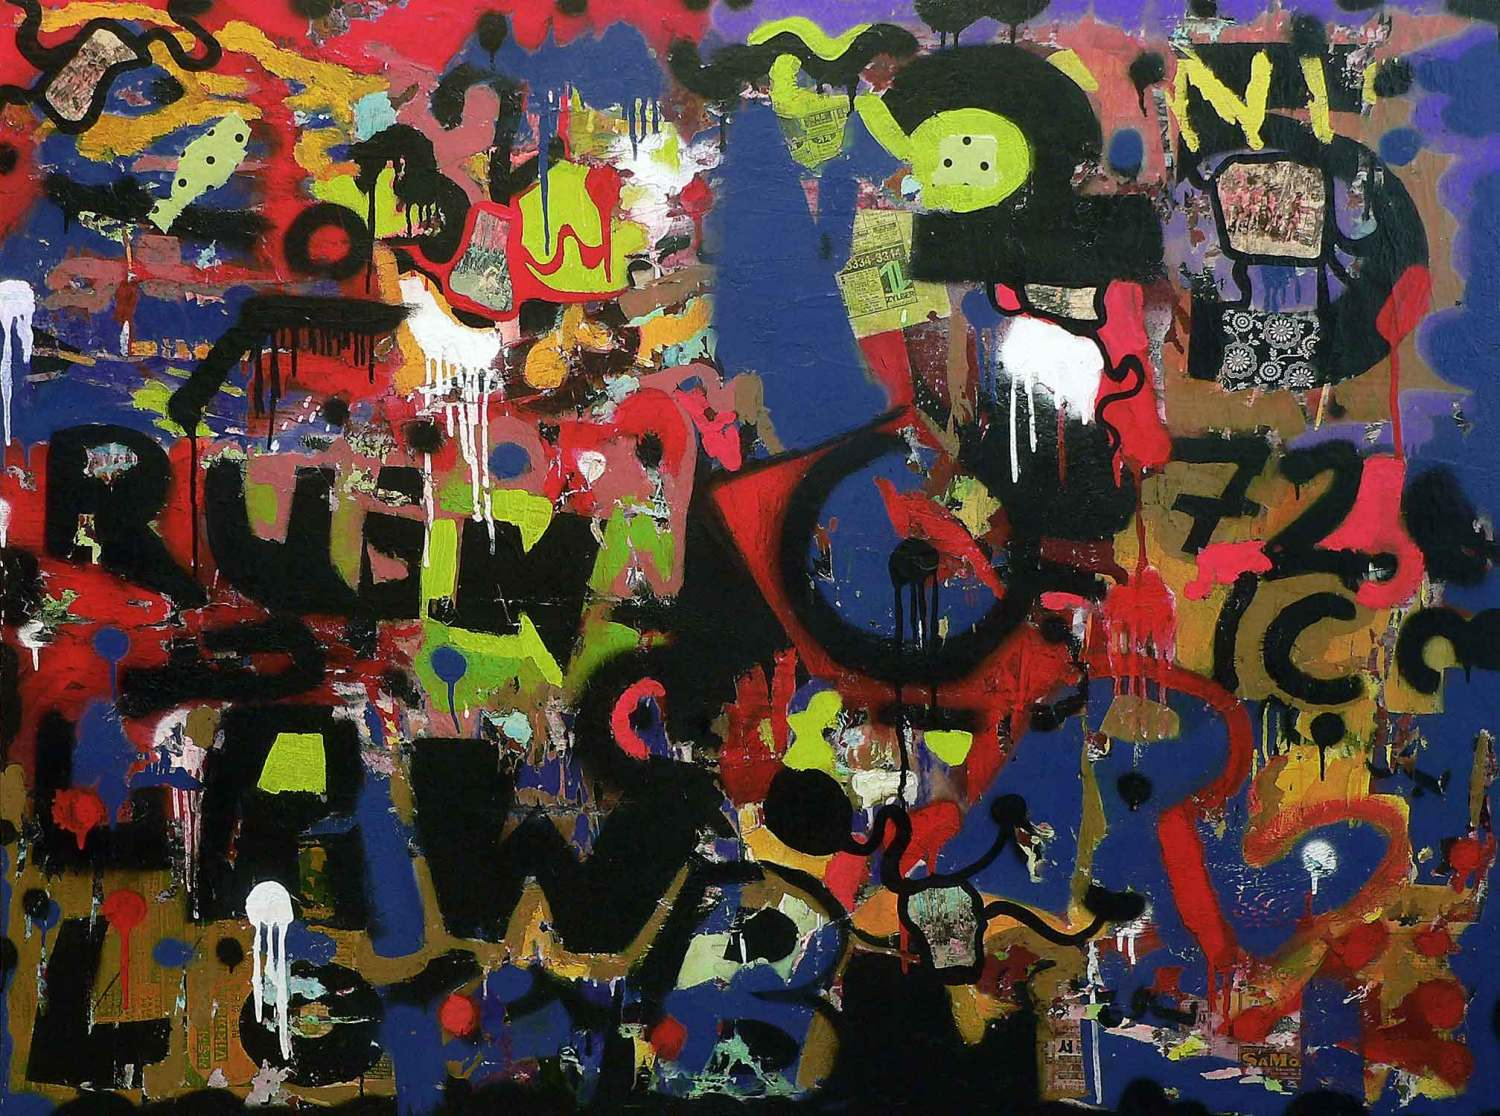 lonely town - 120 x 160 cm - acrylic, spray paint and collage on canvas - 2009